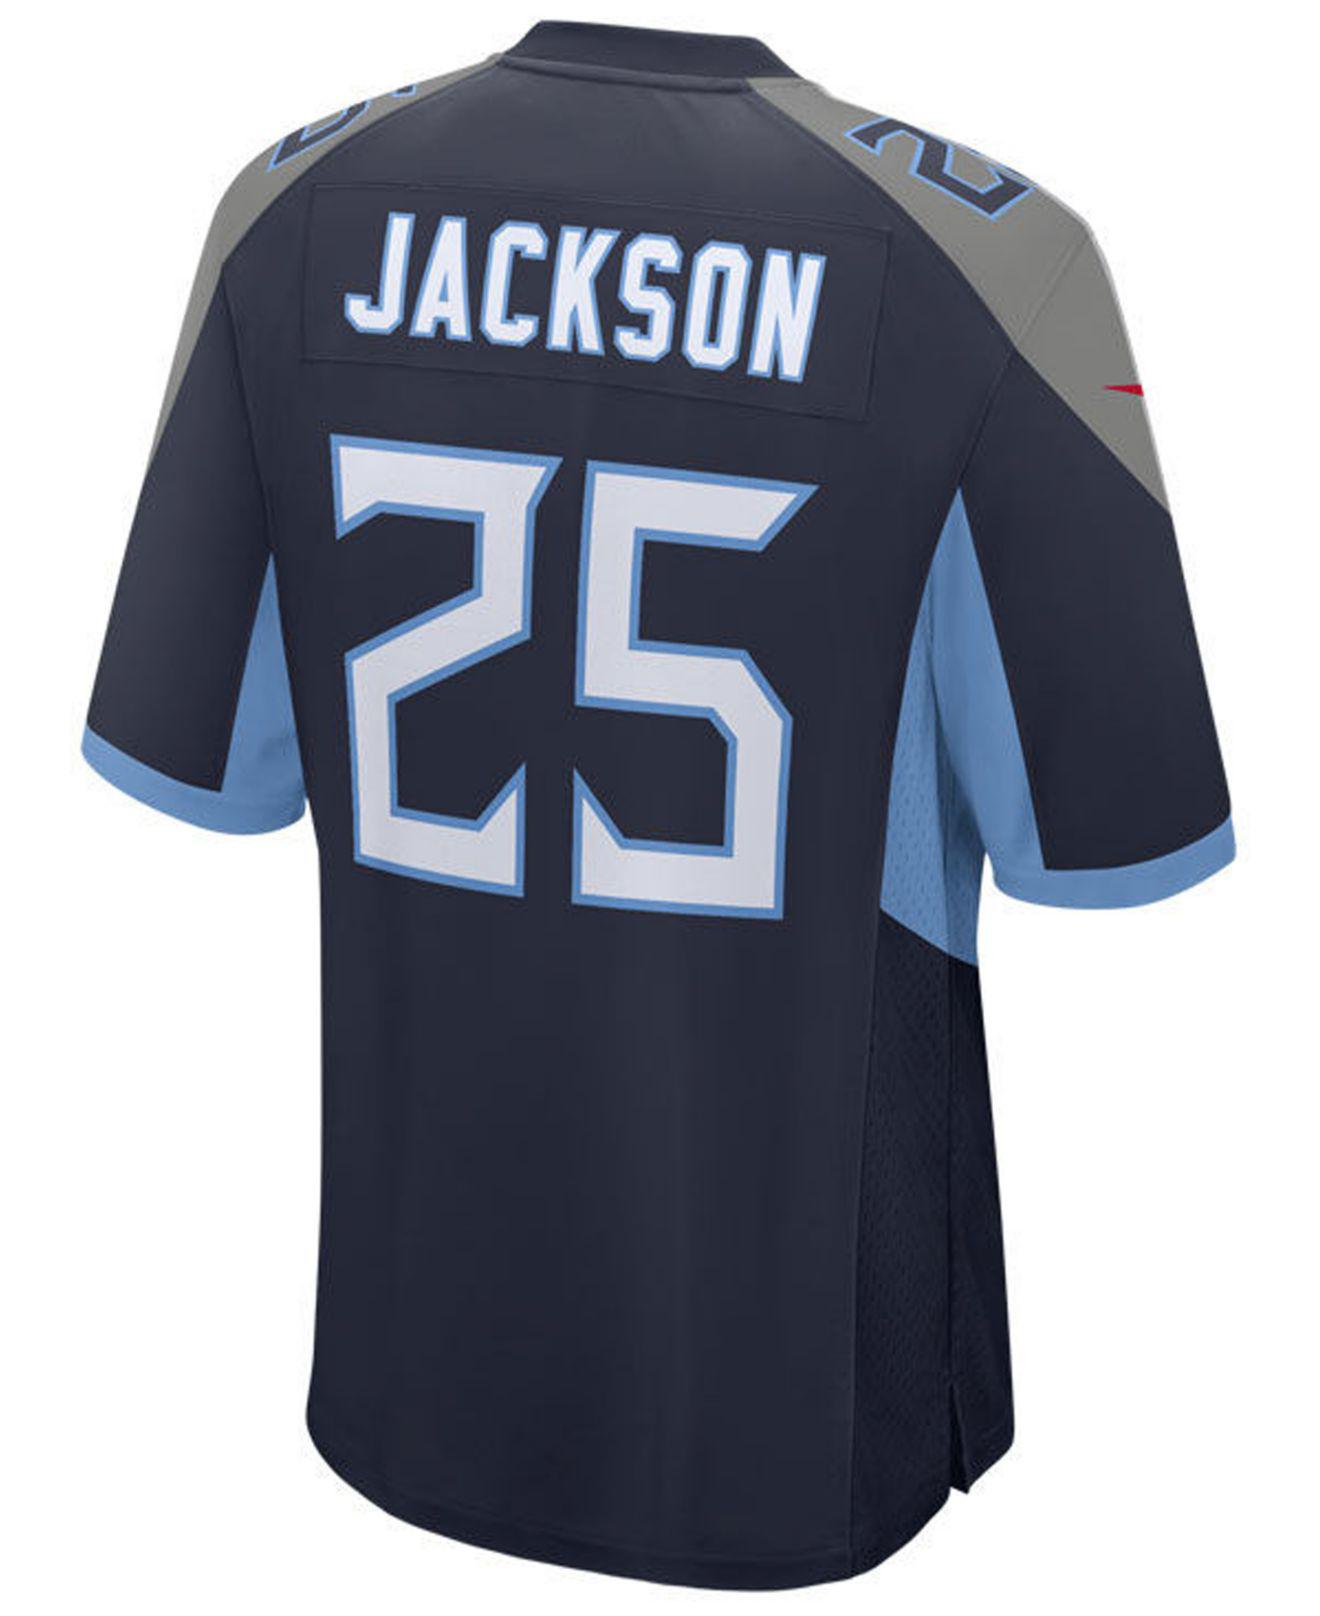 75054d2af Lyst - Nike Adoree  Jackson Tennessee Titans Game Jersey in Blue for Men